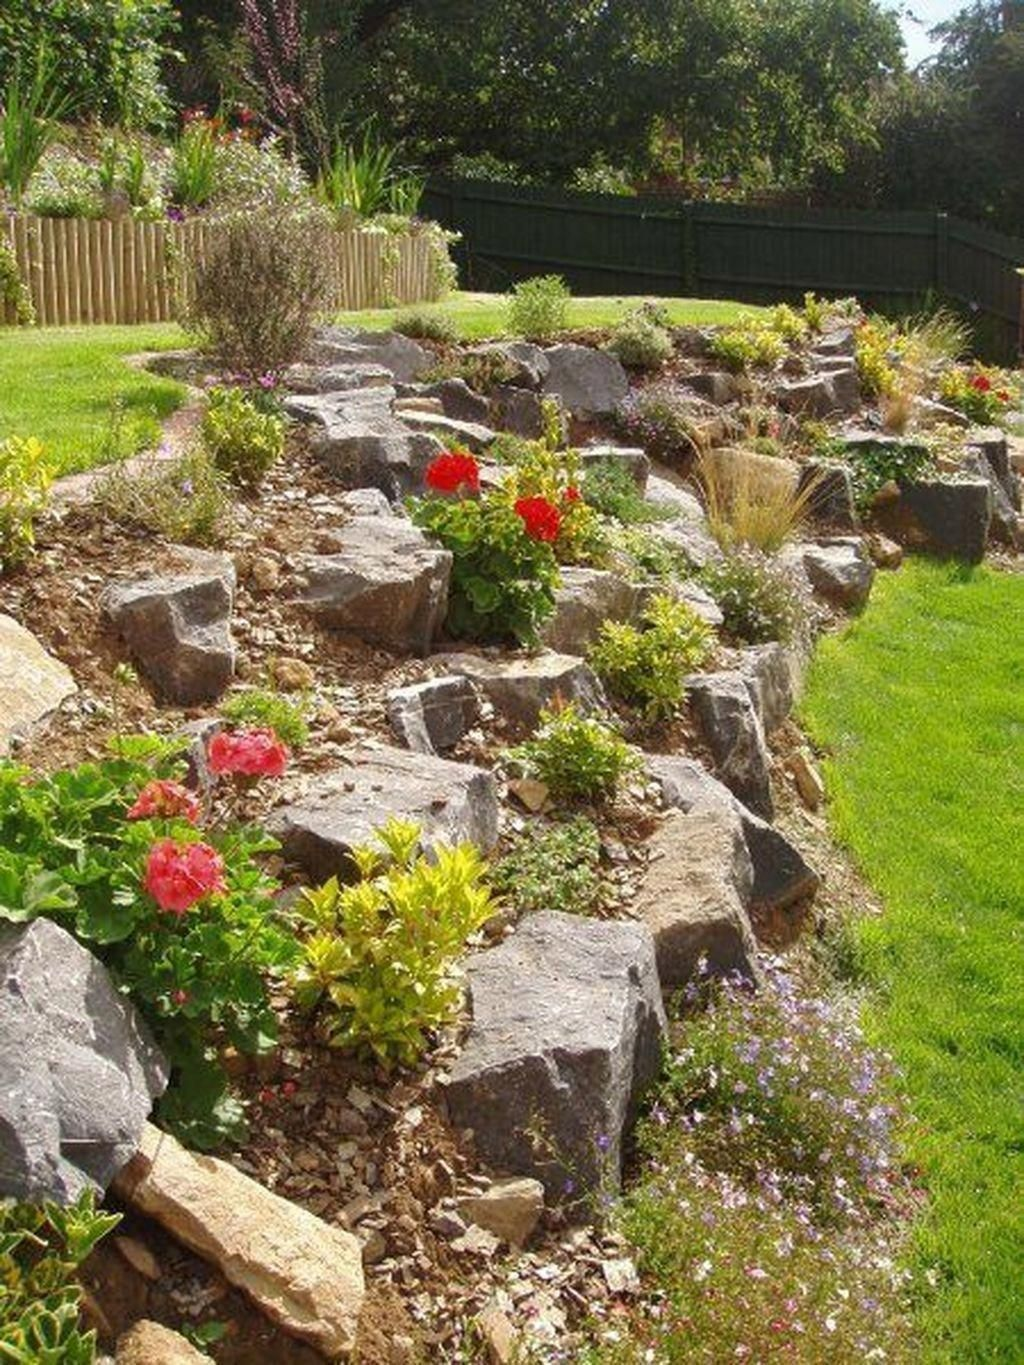 Stunning Rock Garden Landscaping Ideas 24 Landscapedesignwithredroses Hagedesign Hage Uteområde